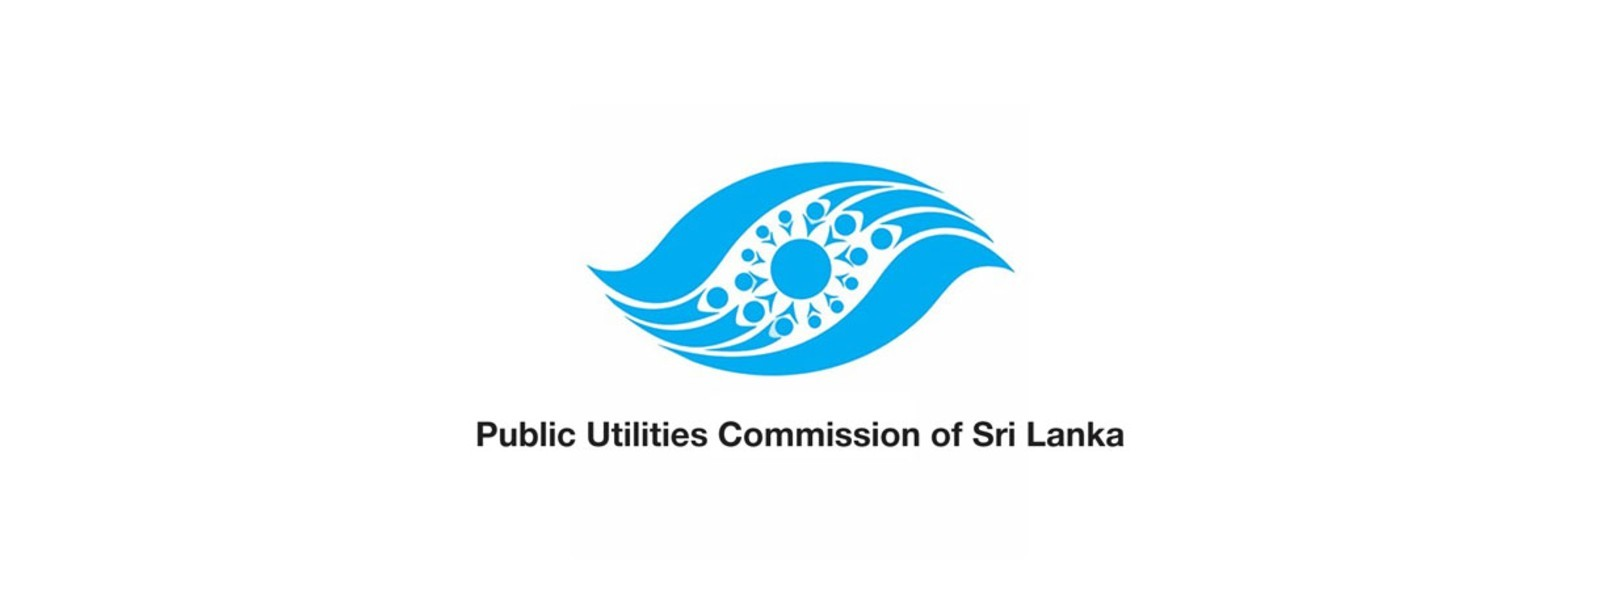 PUCSL NODS FOR THE PPA OF 300 MW KERAWALAPITIYA LNG POWER PLANT